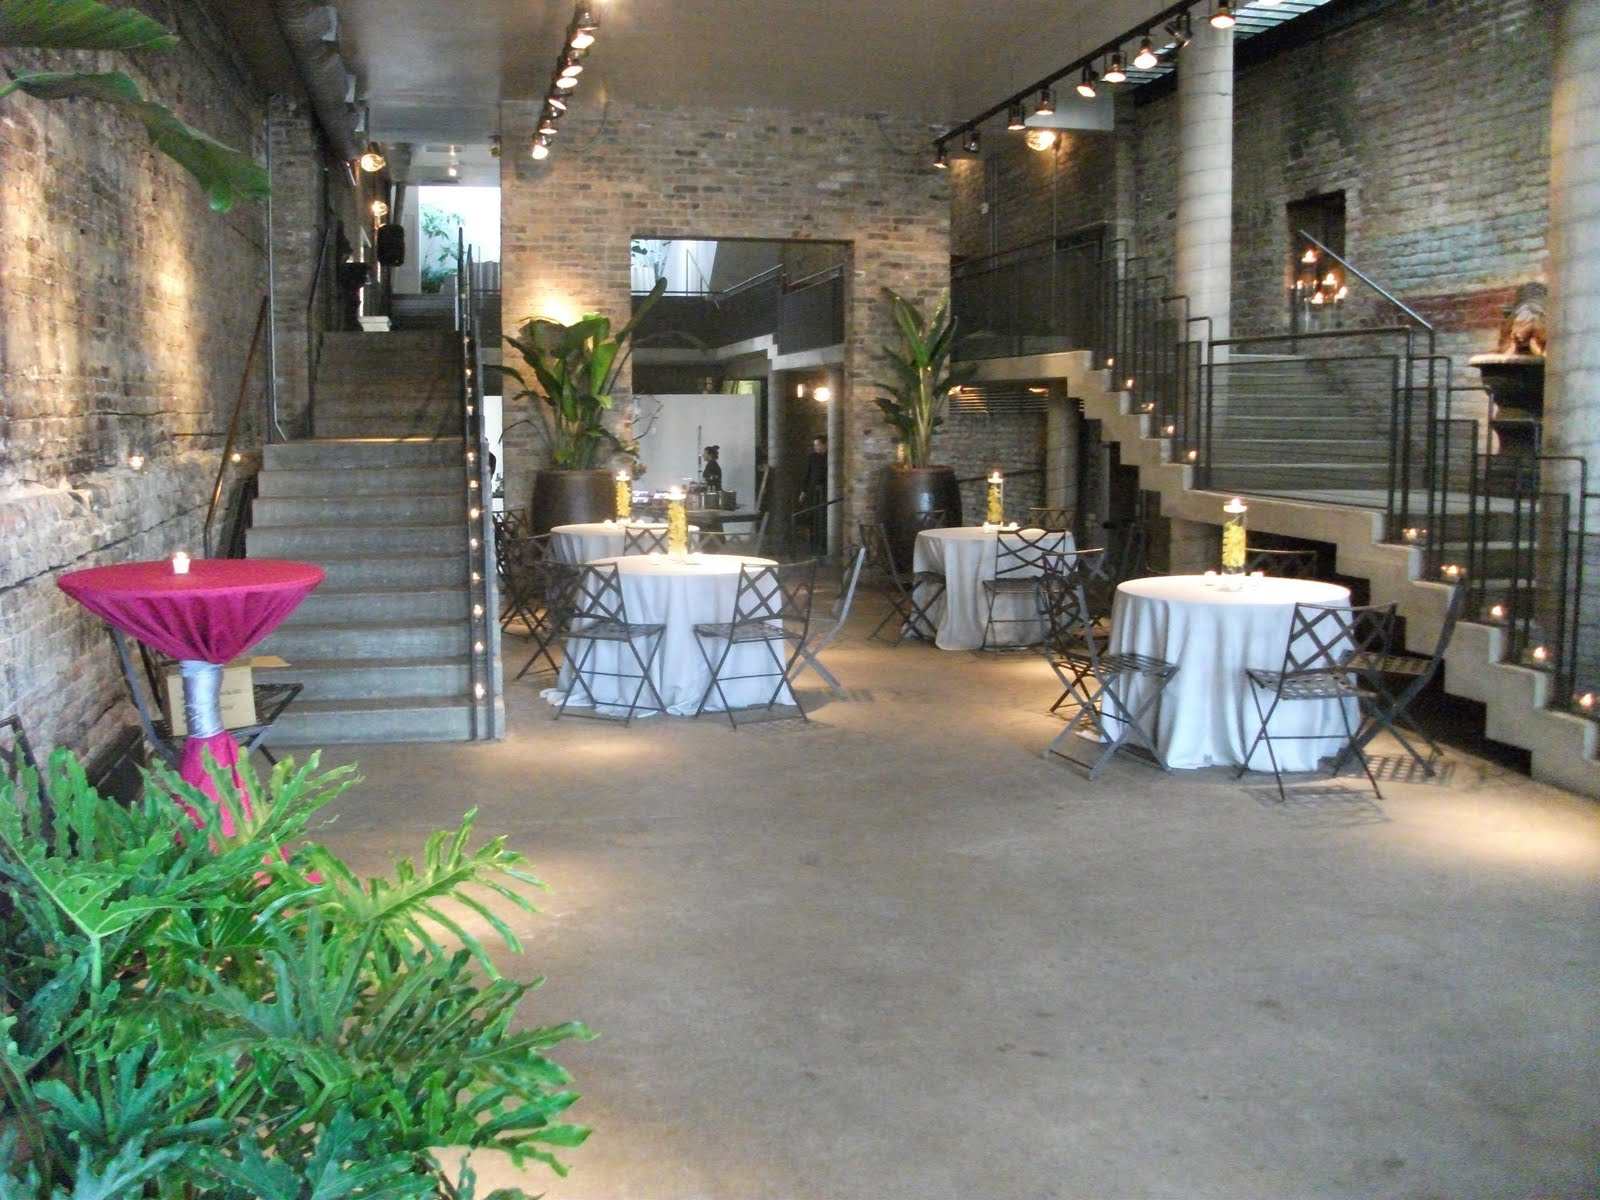 Liven It Up Events Boutique Weddings Corporate Affairs And